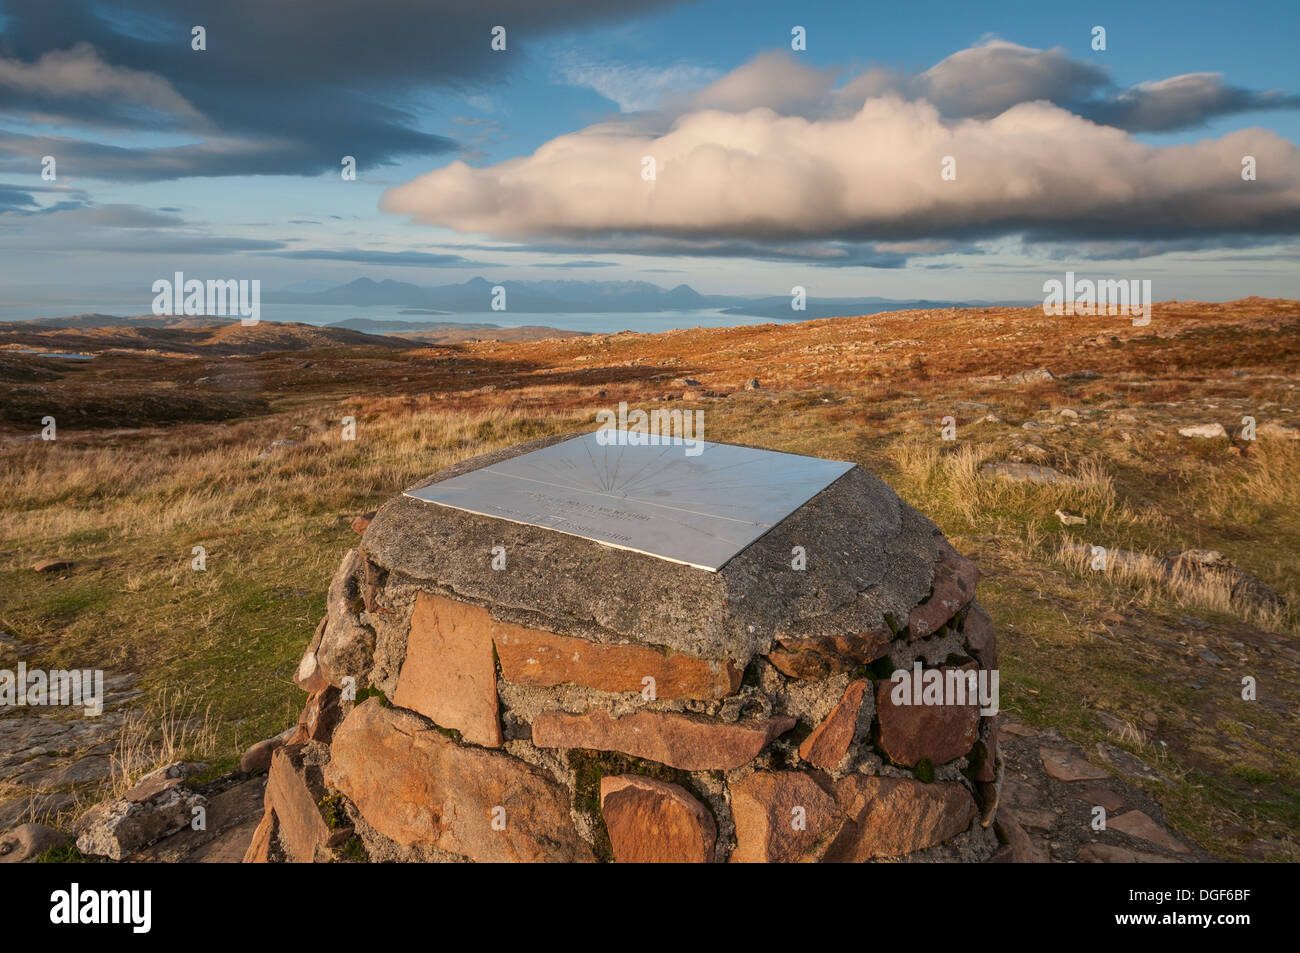 Trigpoint at Carn Glas viewpoint, summit of the Bealach na Ba pass, Scottish Highlands, Scotland, Great Britain - Stock Image